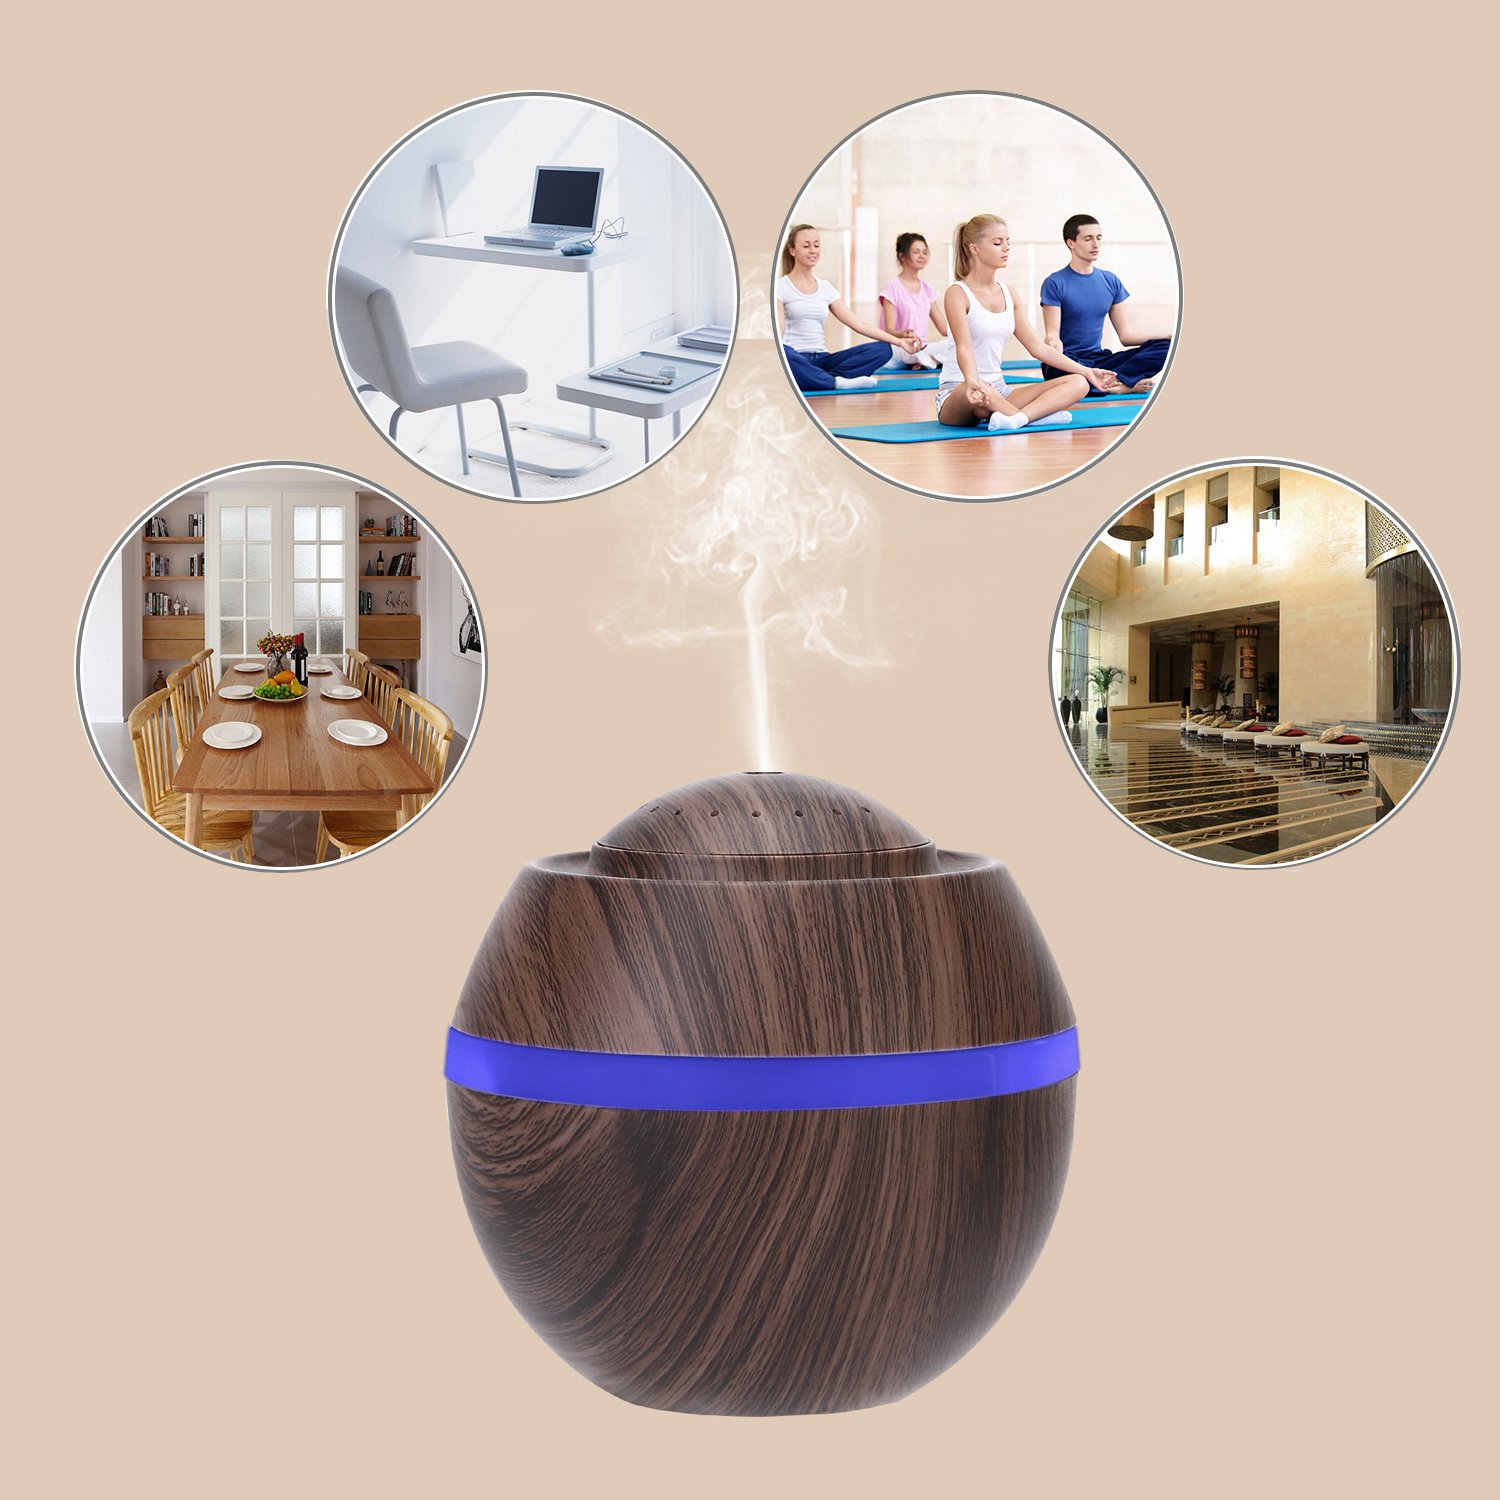 Cool Mist Humidifier Ultrasonic Aroma Essential Oil Diffuser for Office Home Bedroom Living Room Study Yoga Spa - Wood Grain (Brown) by O'abazar (Image #7)